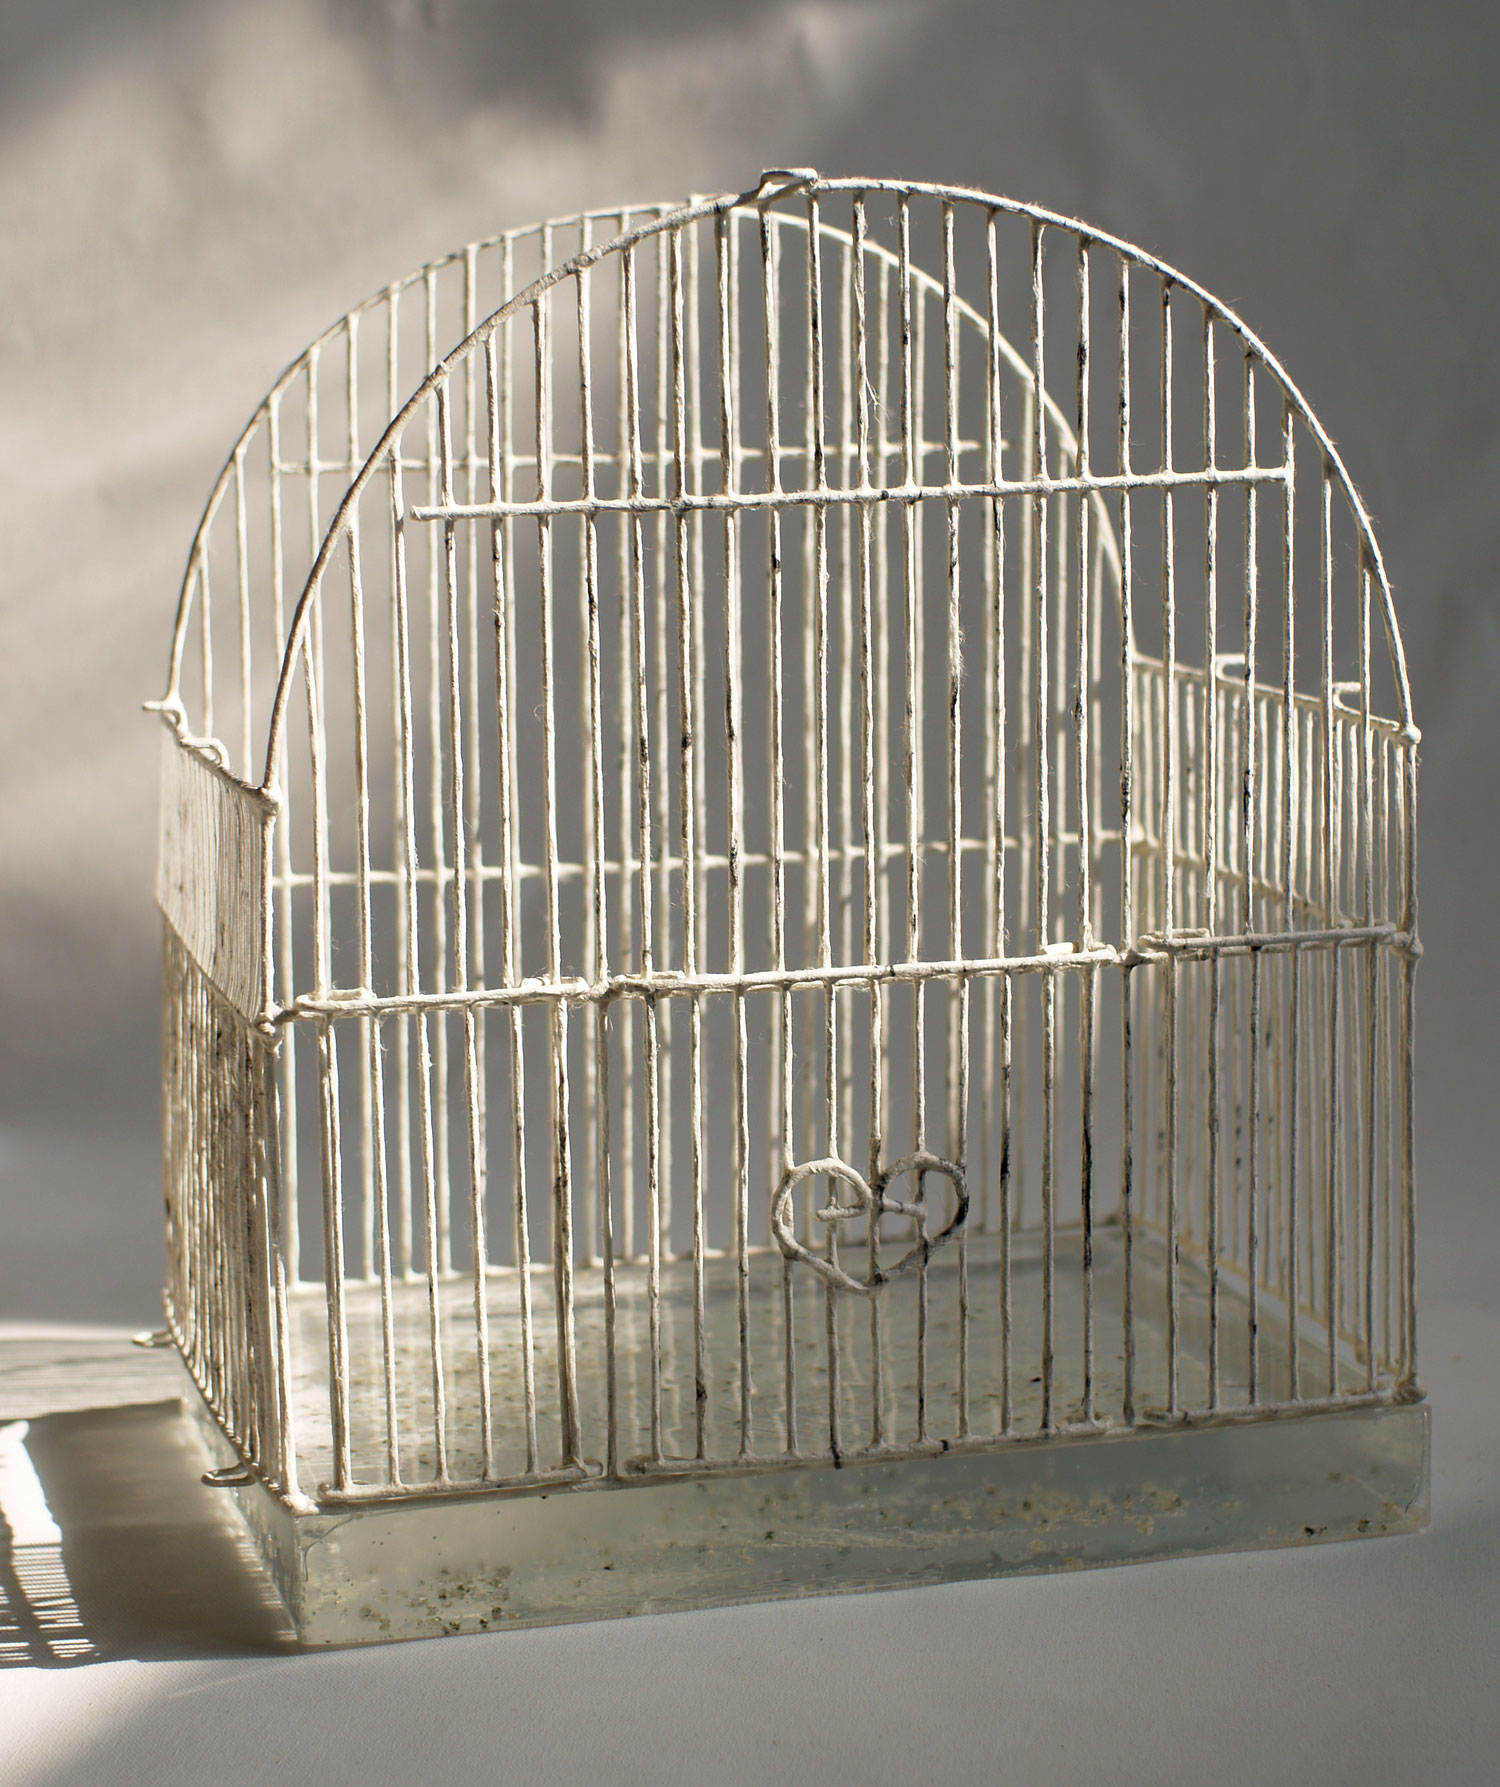 "Birdcage without roof #4   Metal, washi paper, charcoal, resin, dried grain 11.5"" x 8.5"" x 13.5"", 2010"